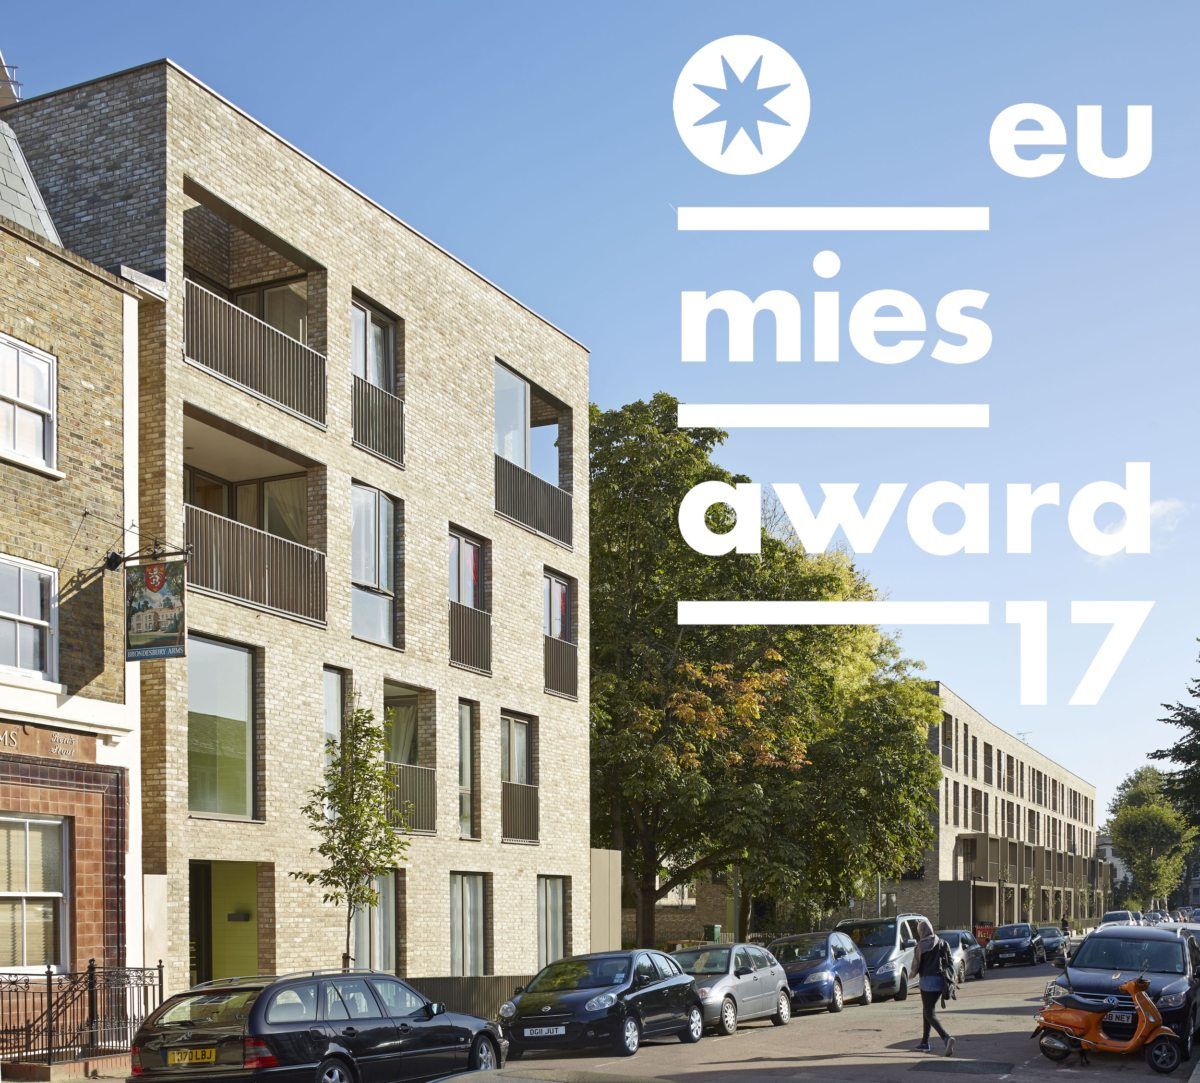 Ely Court - EU Mies Award 2017